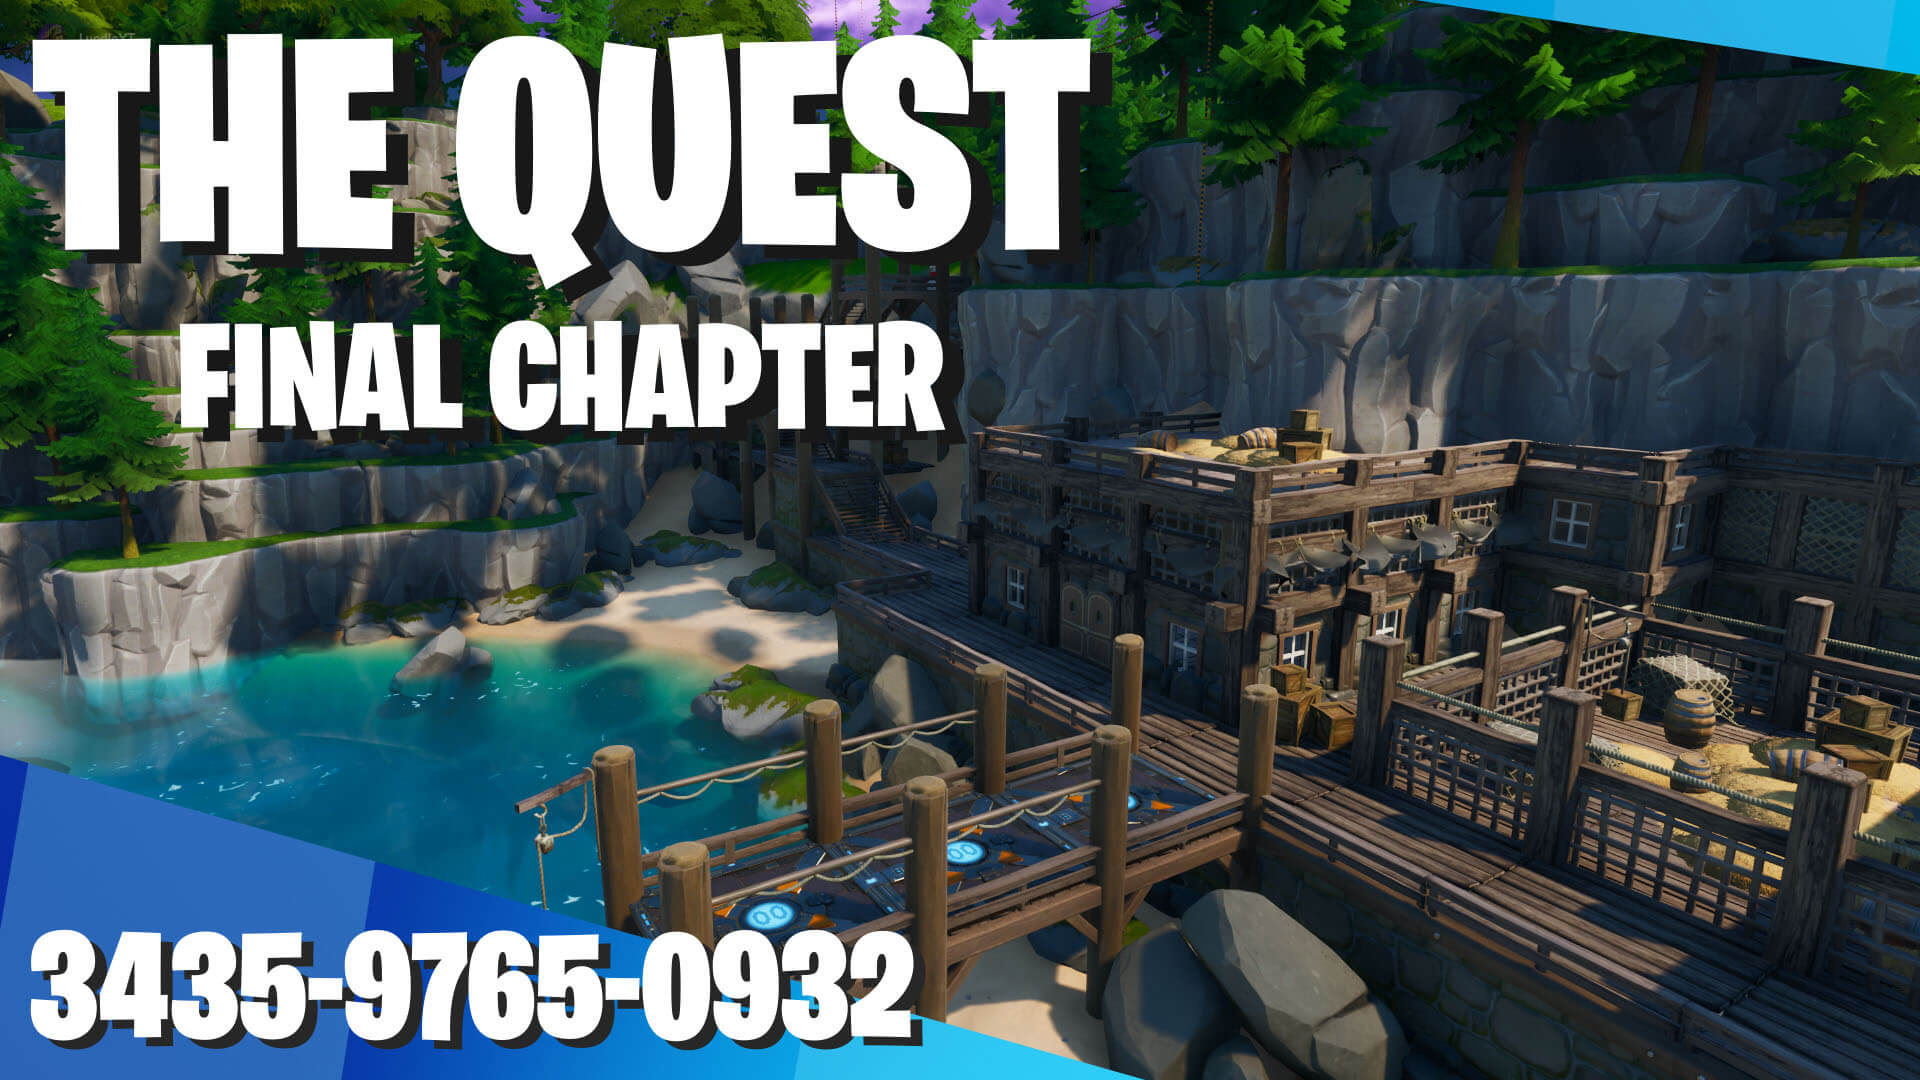 THE QUEST - FINAL CHAPTER